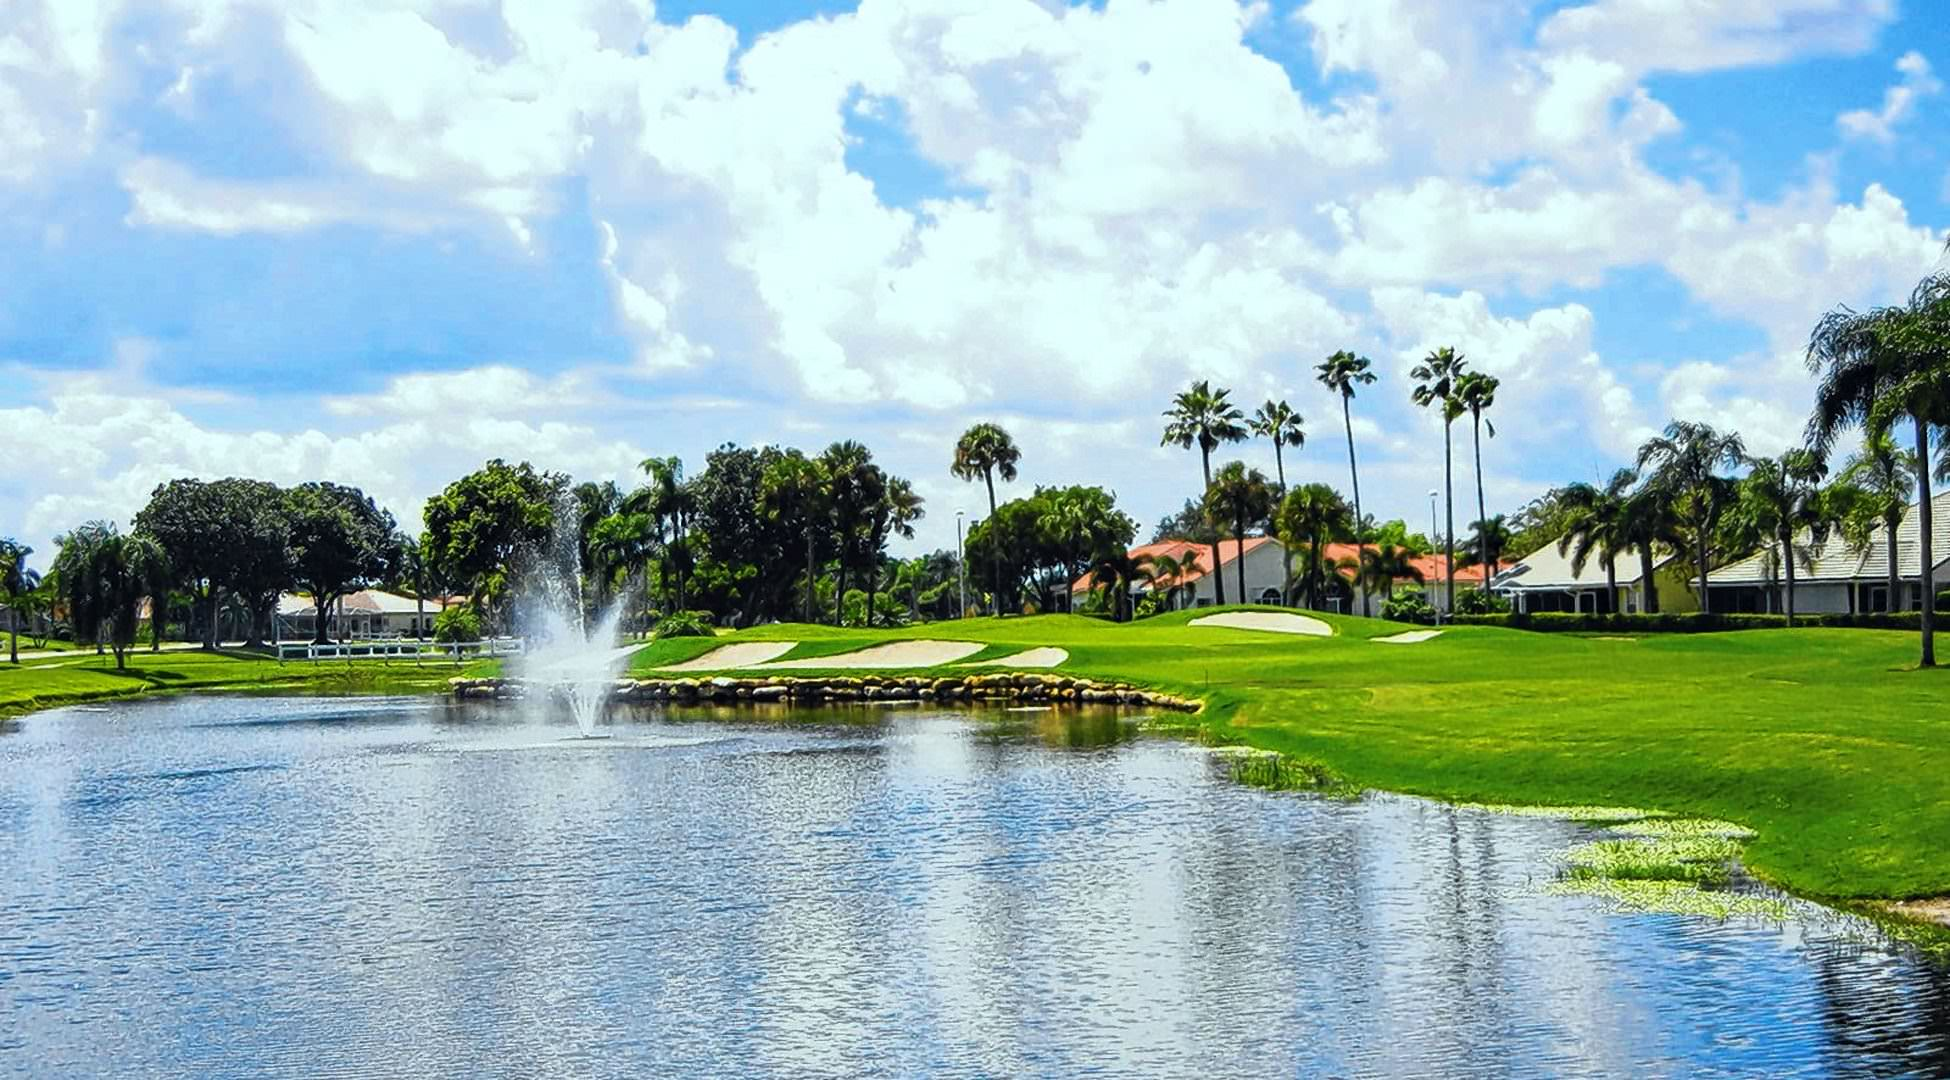 Atlantic_National_golfclub_palm_beach_fl2 - pga village